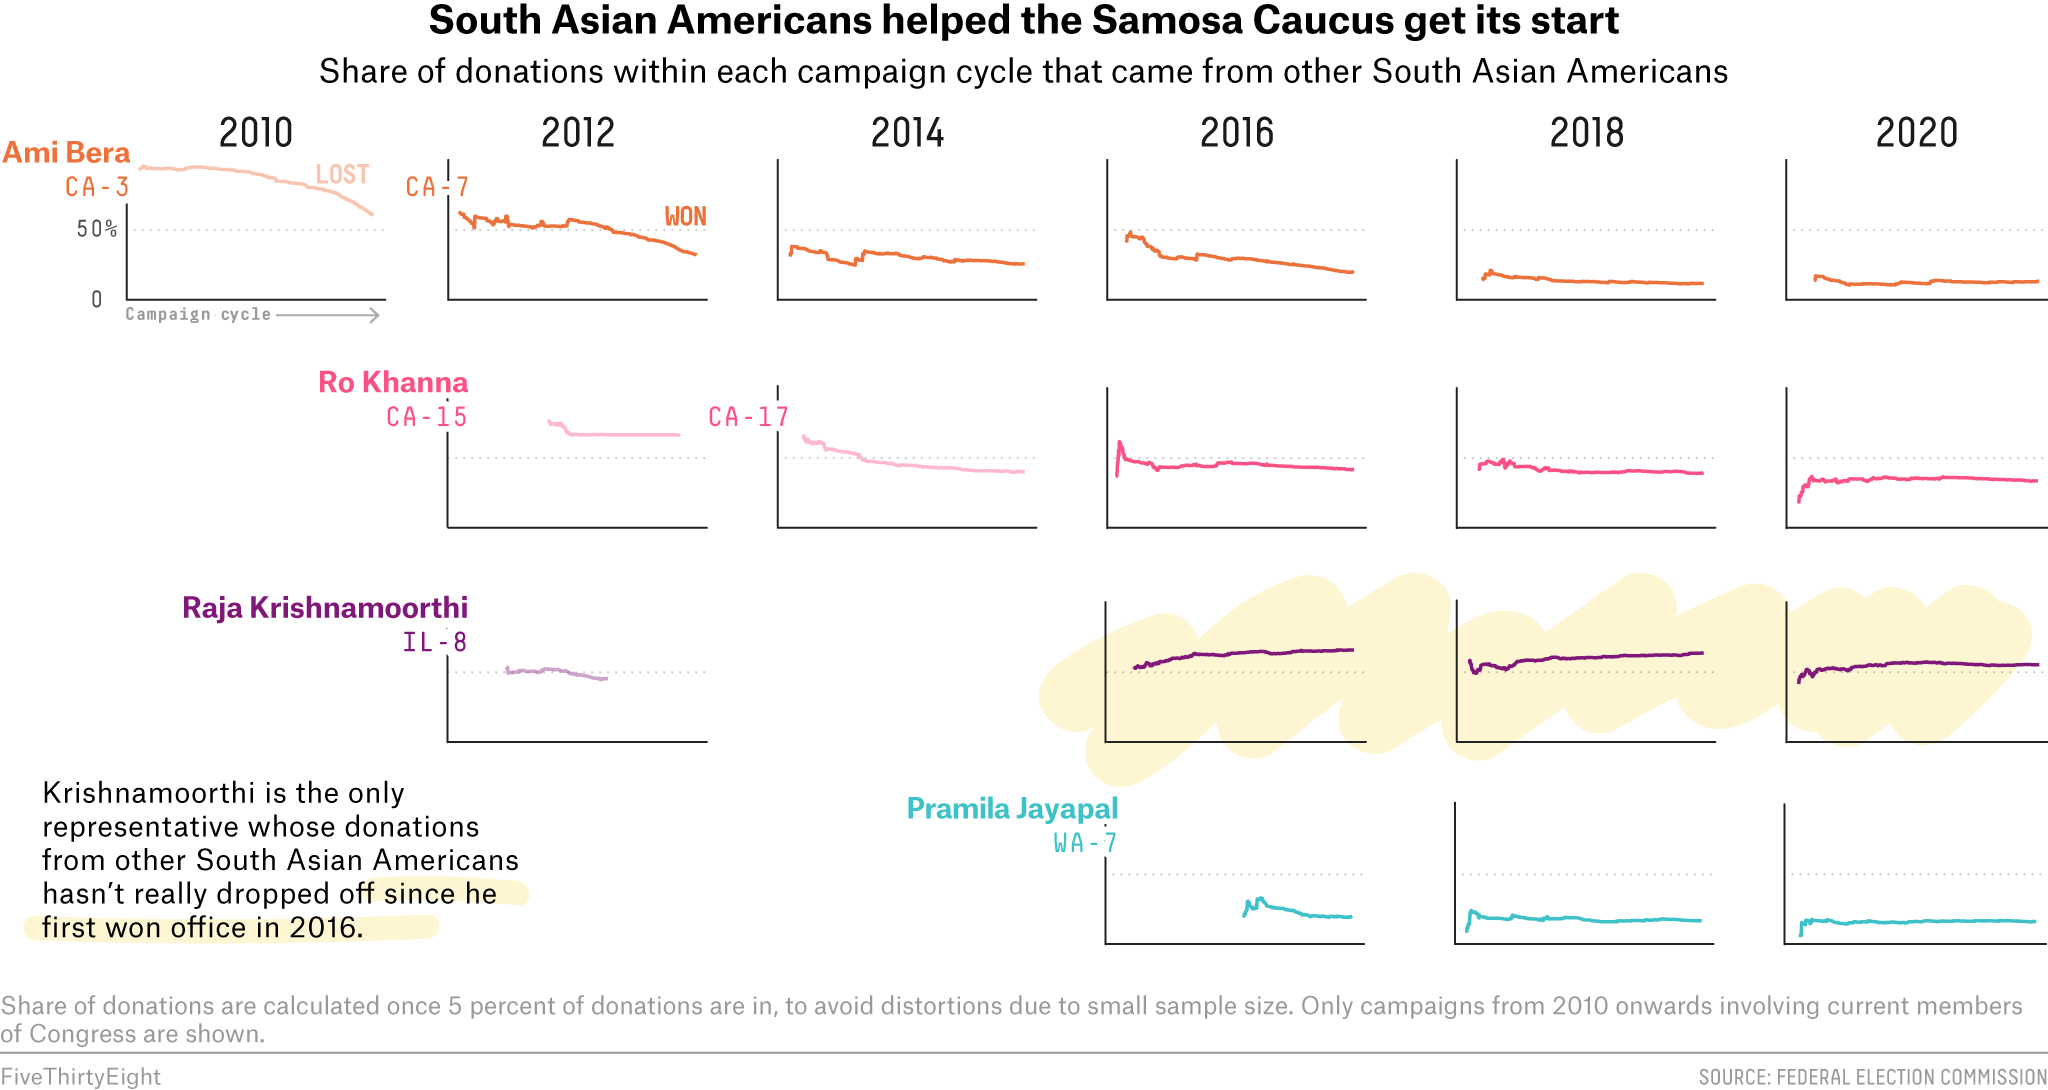 Many South Asian Americans Tap Into Their Community To Kick-Start Their Political Careers 4